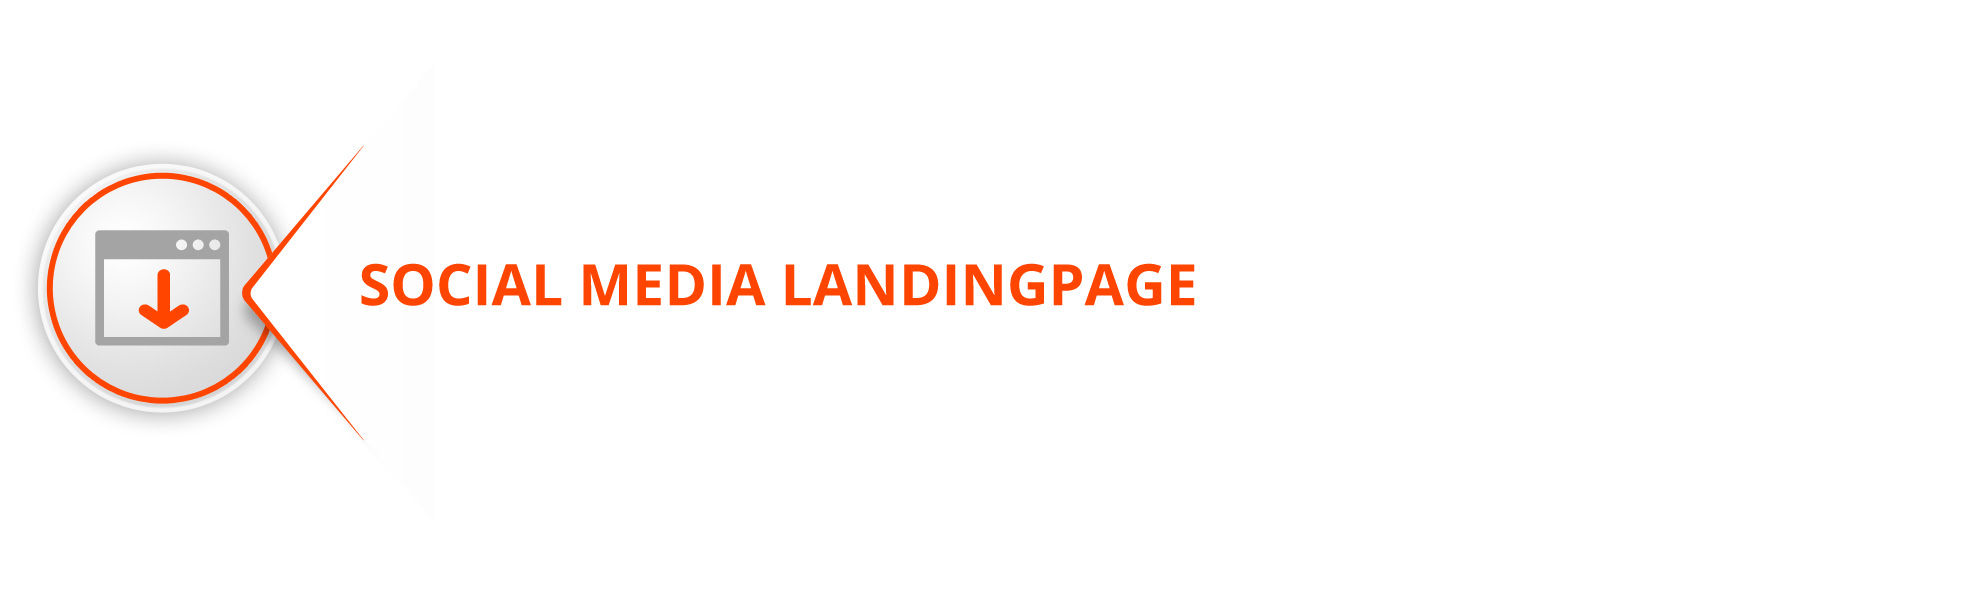 social-media-landingpage-azobit